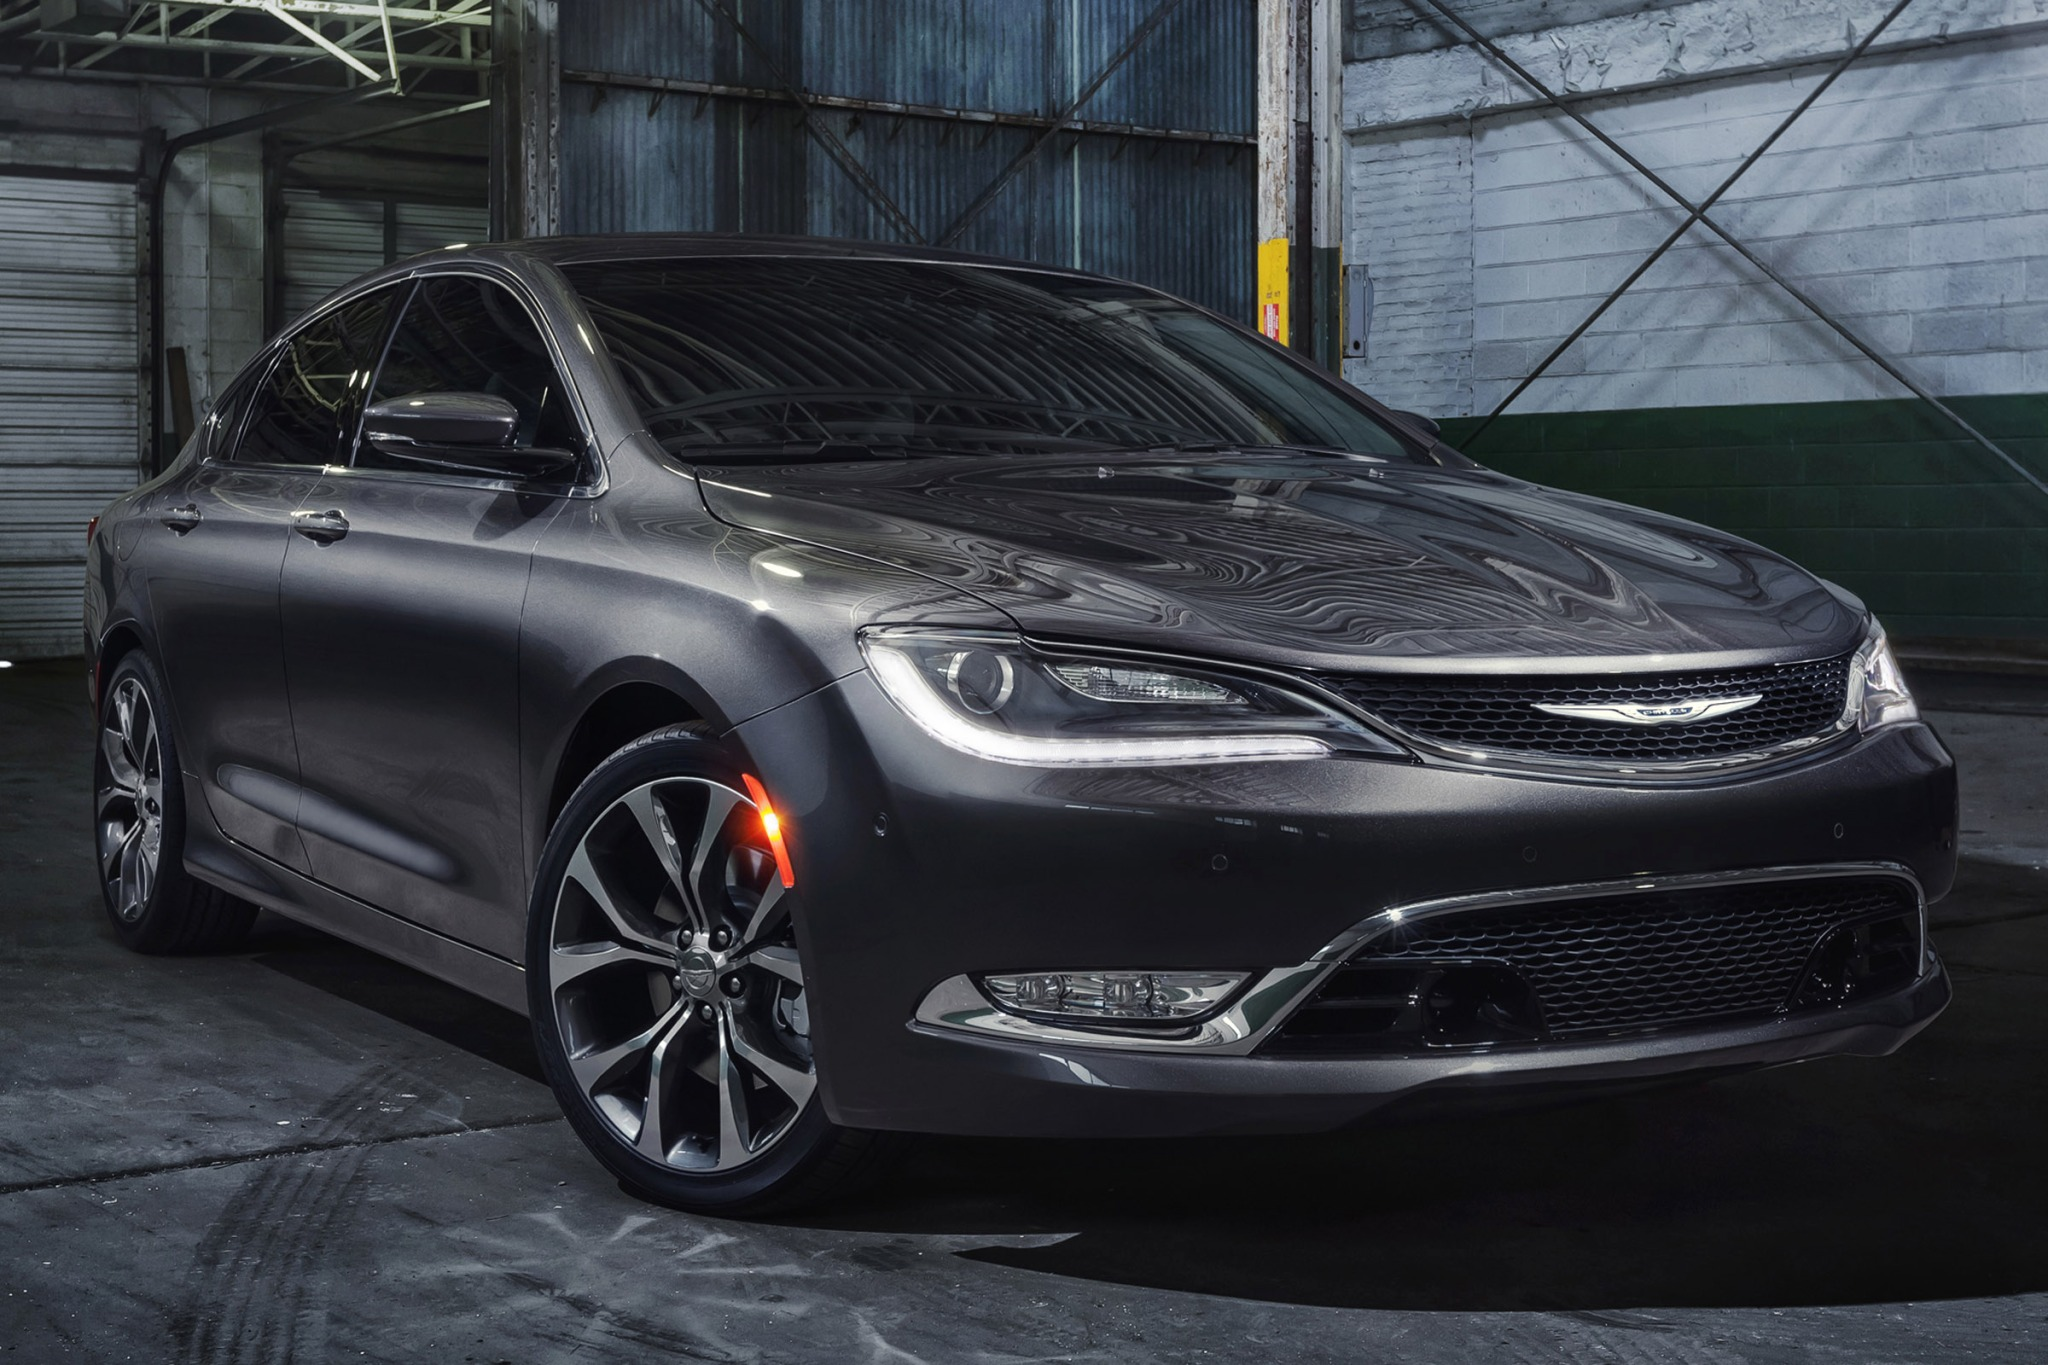 2015 Chrysler 200 C Sedan exterior #1